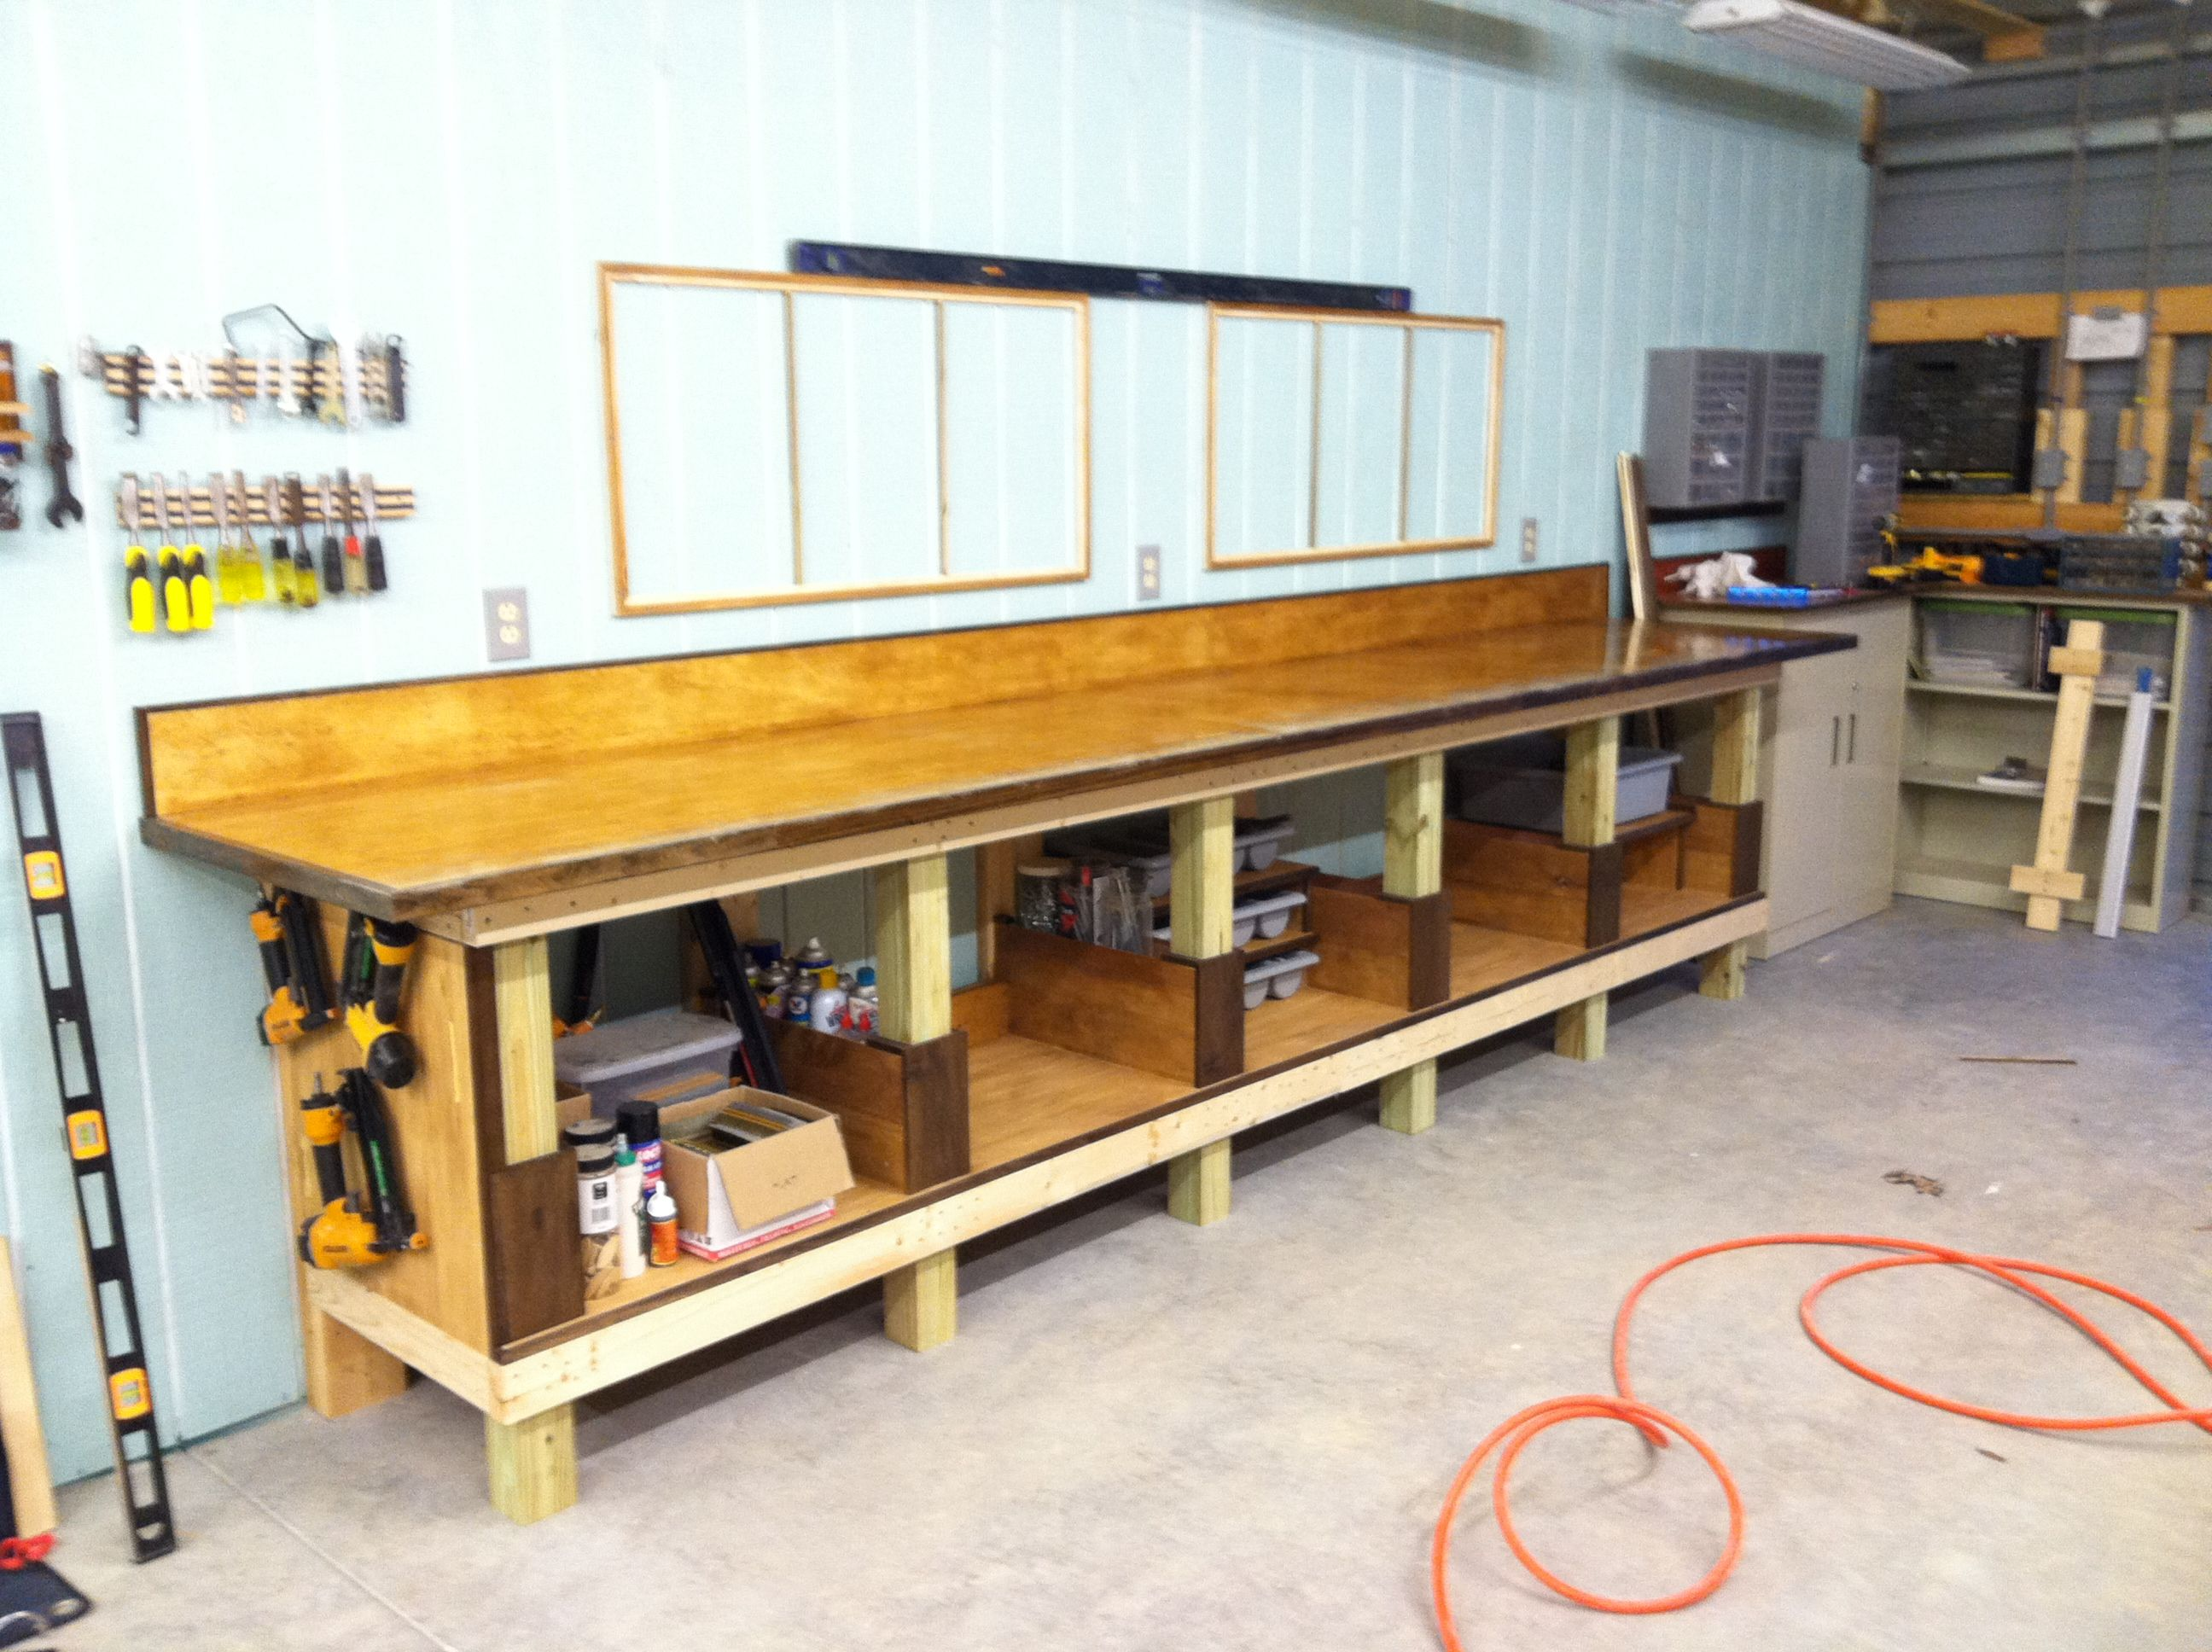 Finished Shop Work Bench With Shelving Storage Insets Bench Top Finish Is Minwax Golden Oak Stain And 5 Coats Of Workbench Shop Work Bench Benches For Sale